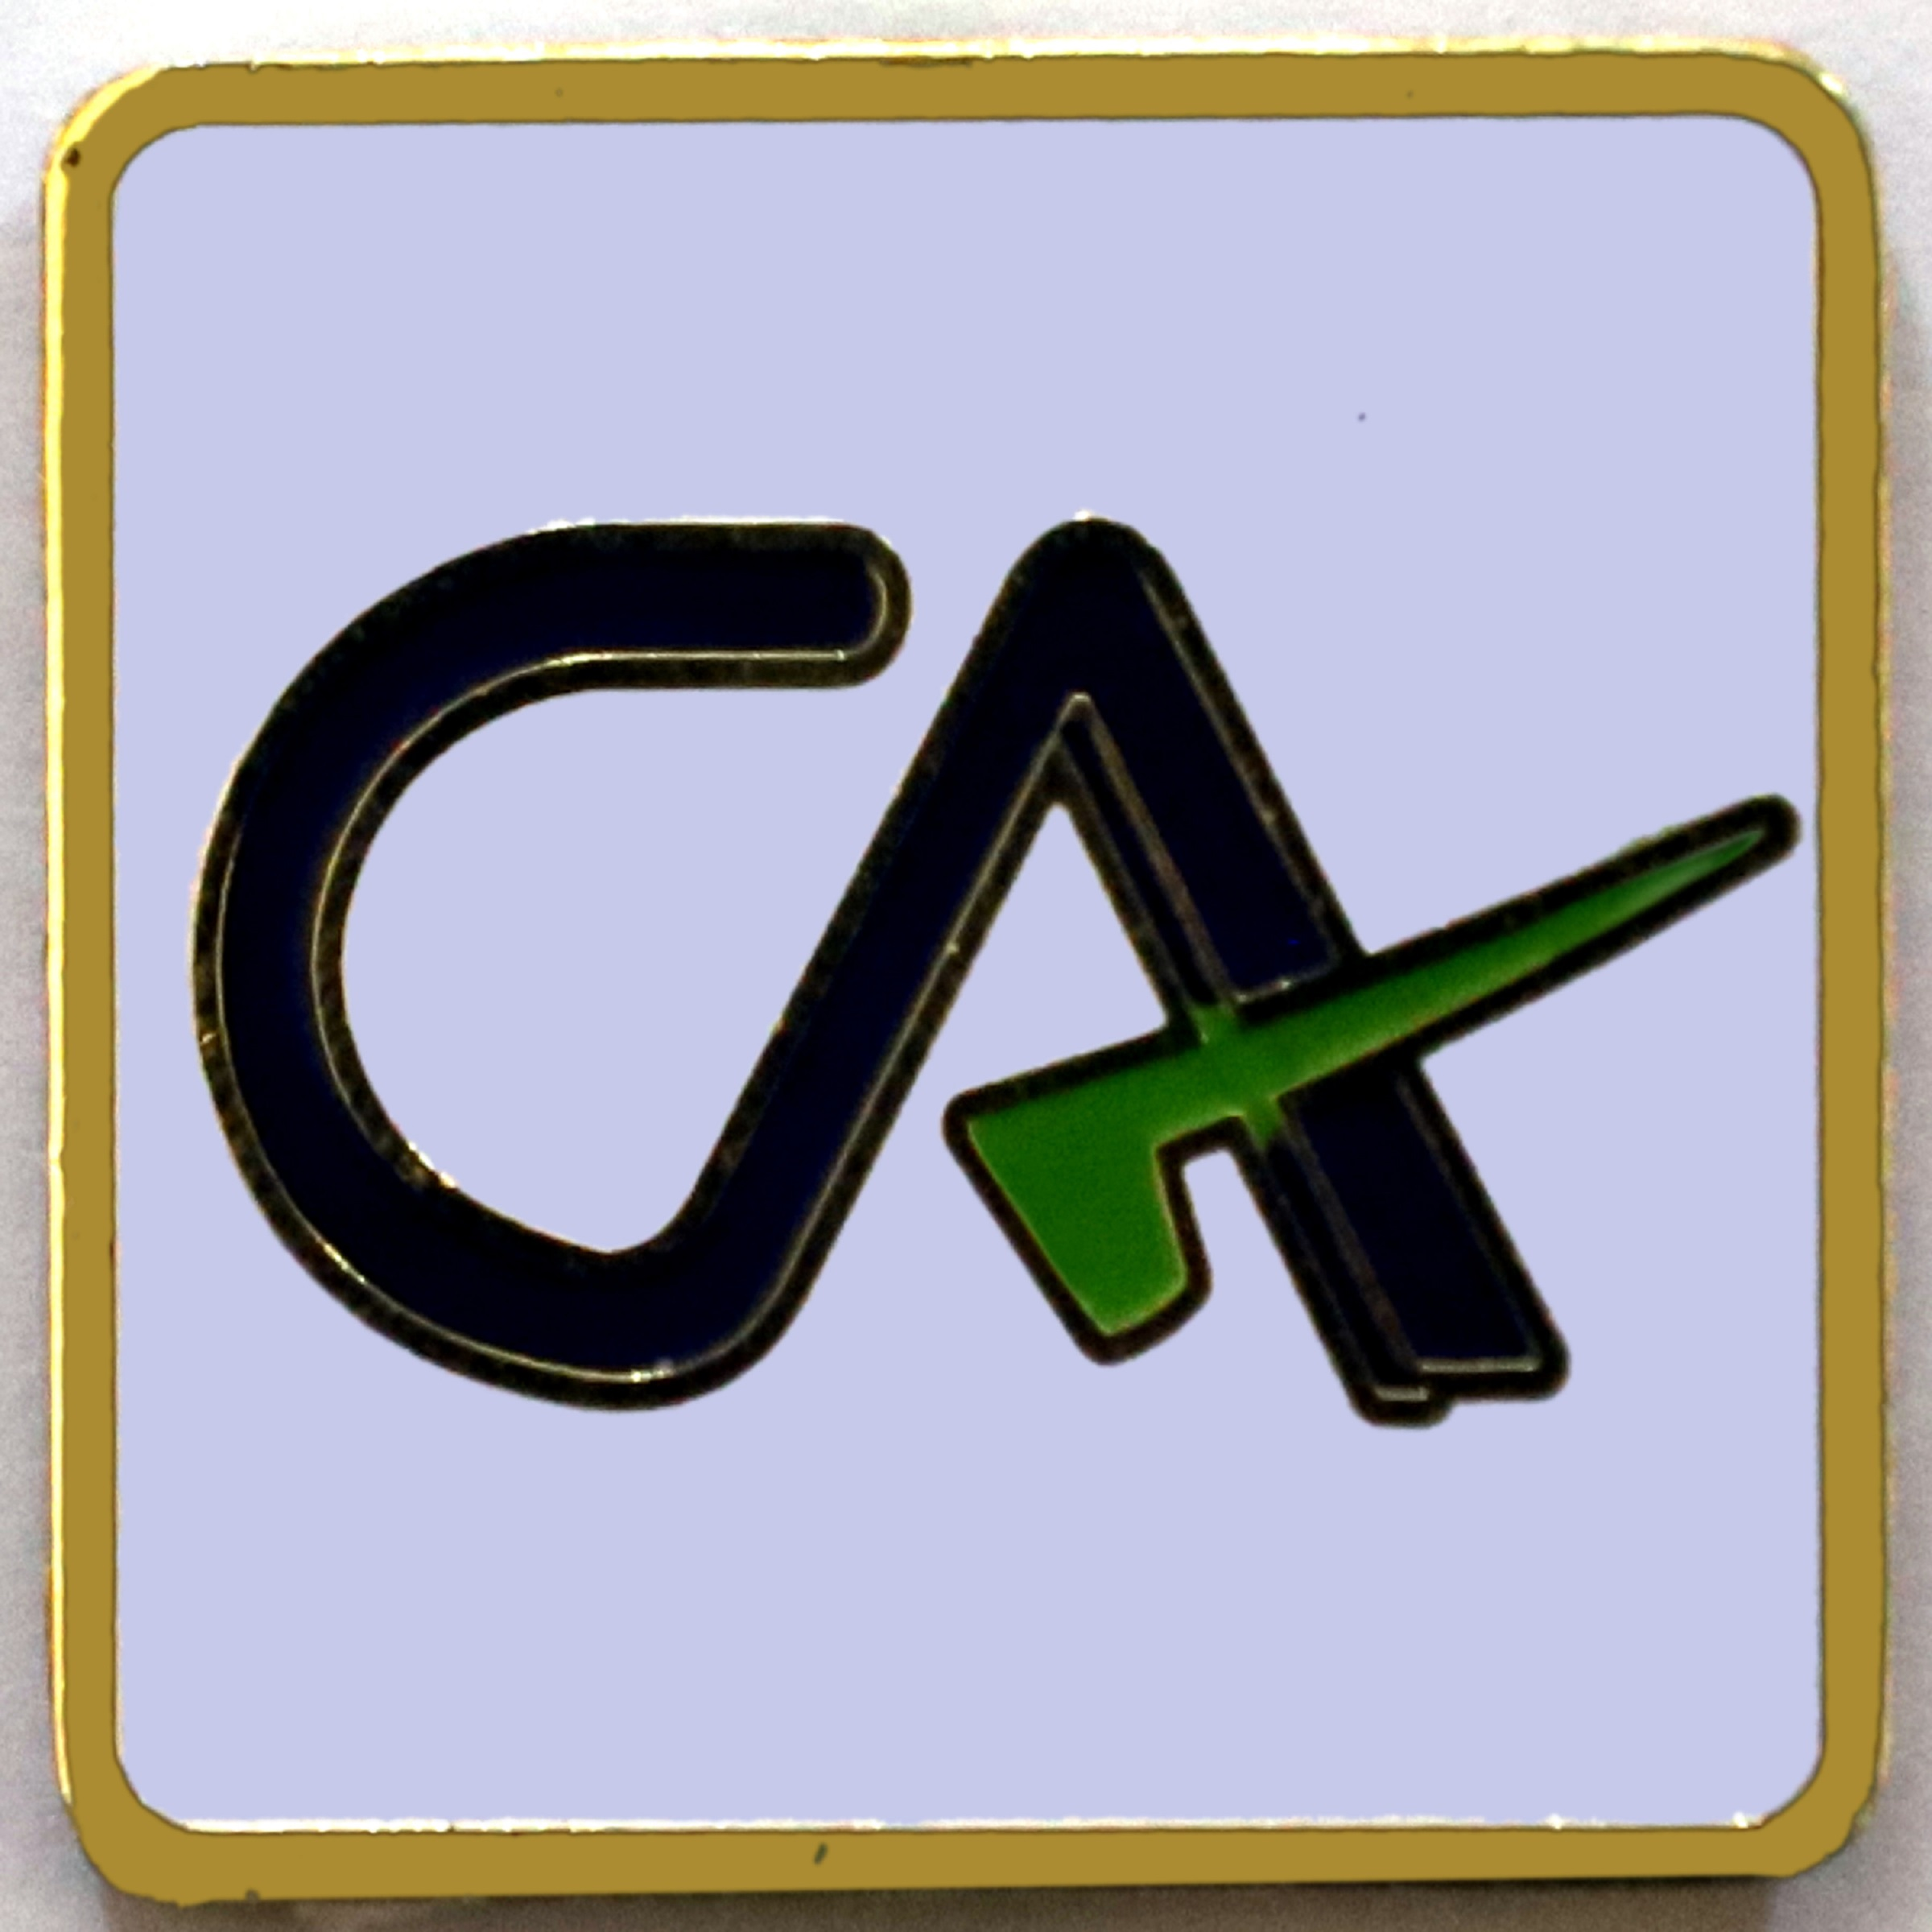 ICAI Lapel Pin CA (Member) (Square) - July, 2019